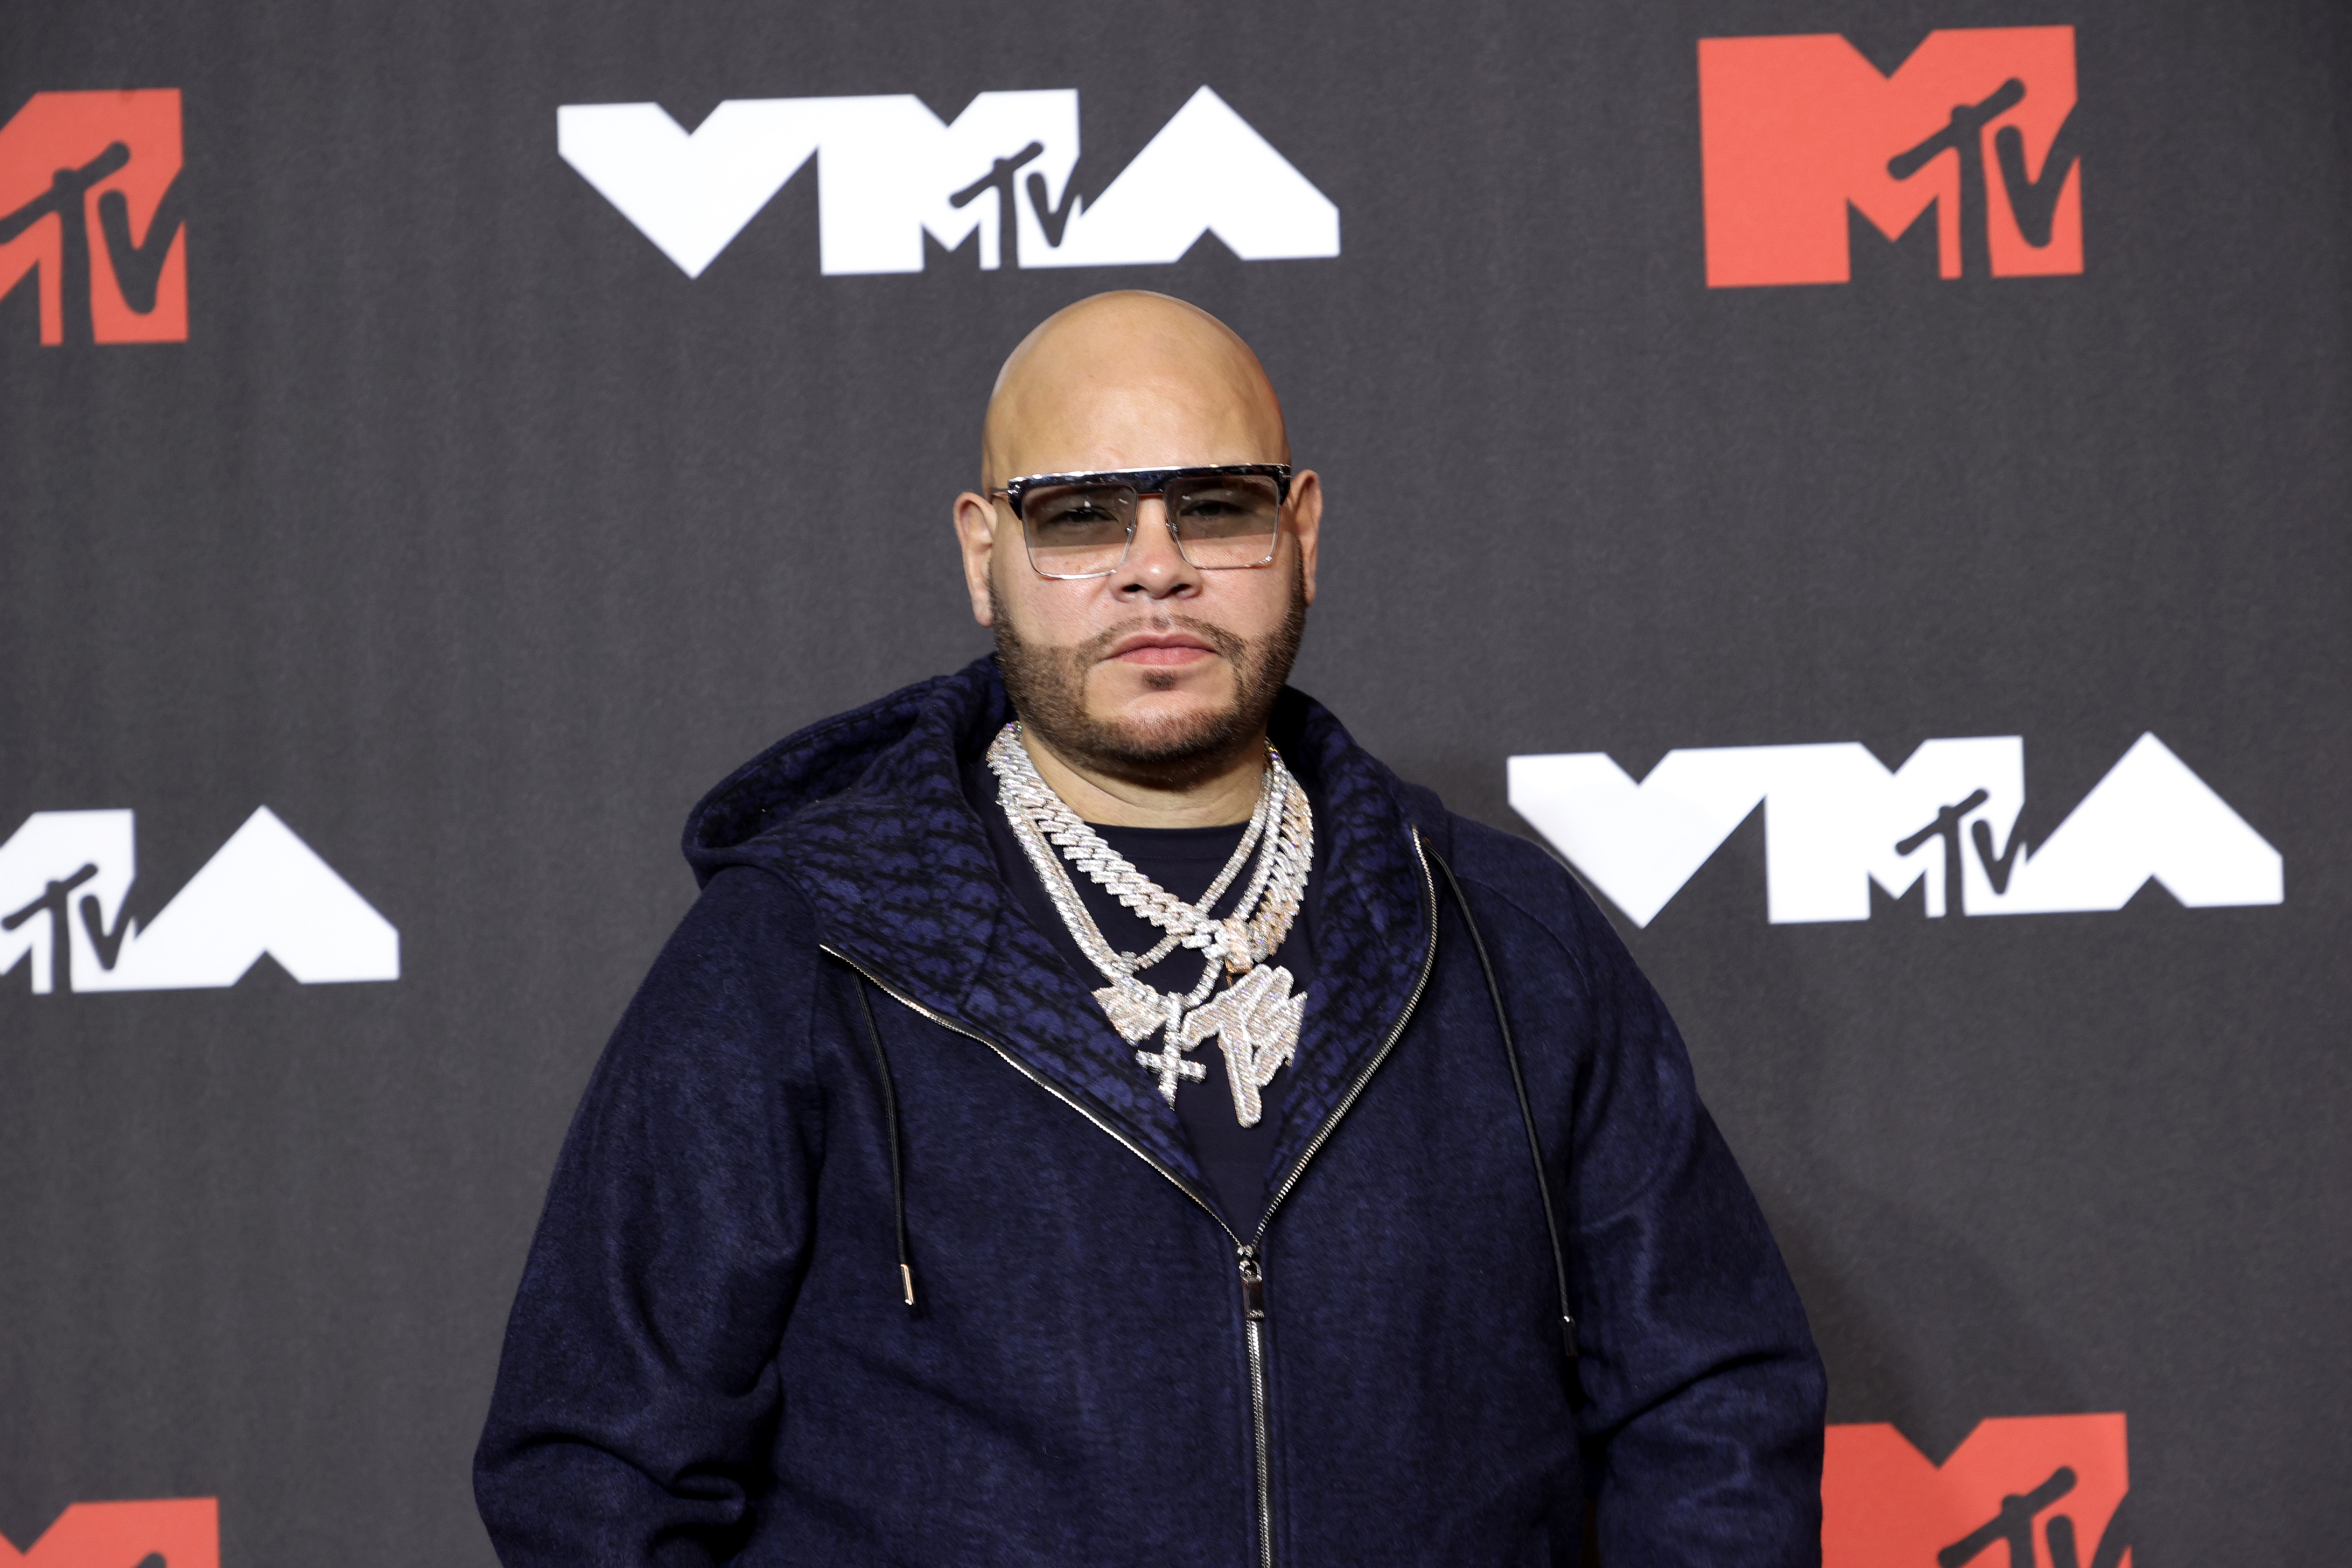 Jamie McCarthy, NEW YORK, NEW YORK - SEPTEMBER 12: Fat Joe attends the 2021 MTV Video Music Awards at Barclays Center on September 12, 2021 in the Brooklyn borough of New York City. (Photo by Jamie McCarthy/Getty Images for MTV/ ViacomCBS) ORG XMIT: 775707142